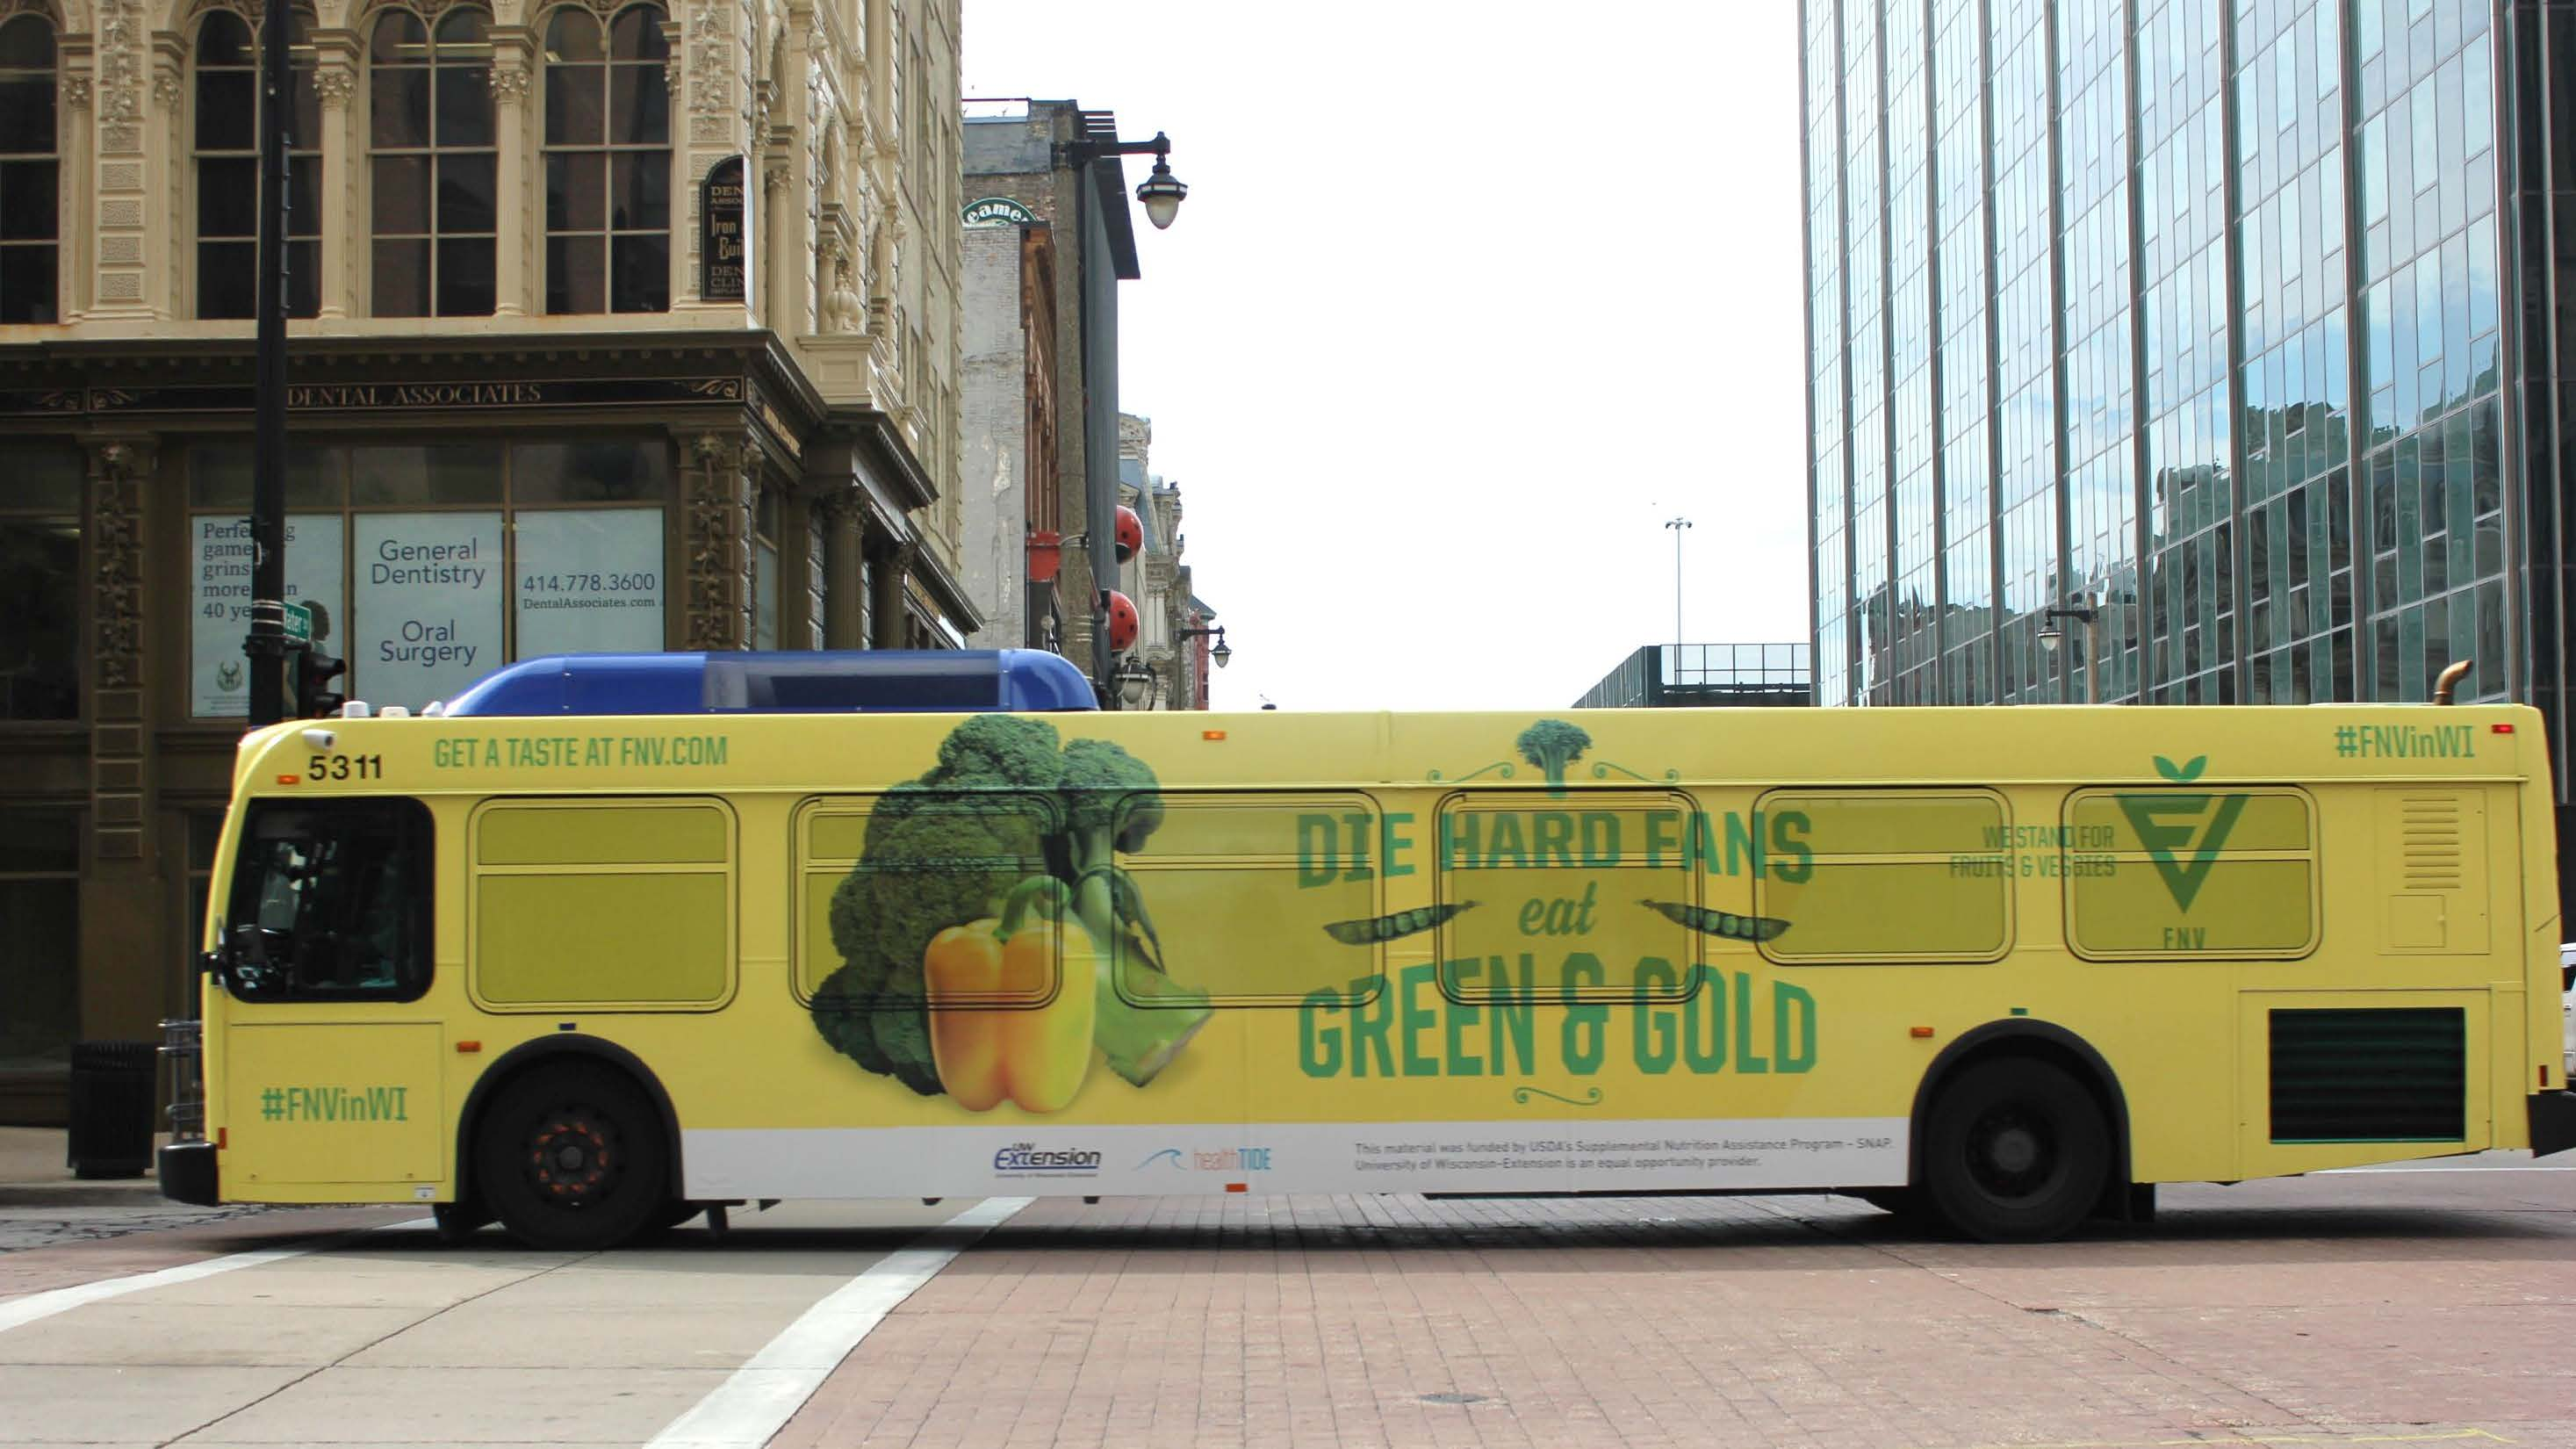 bus promoting broccoli and bell pepper